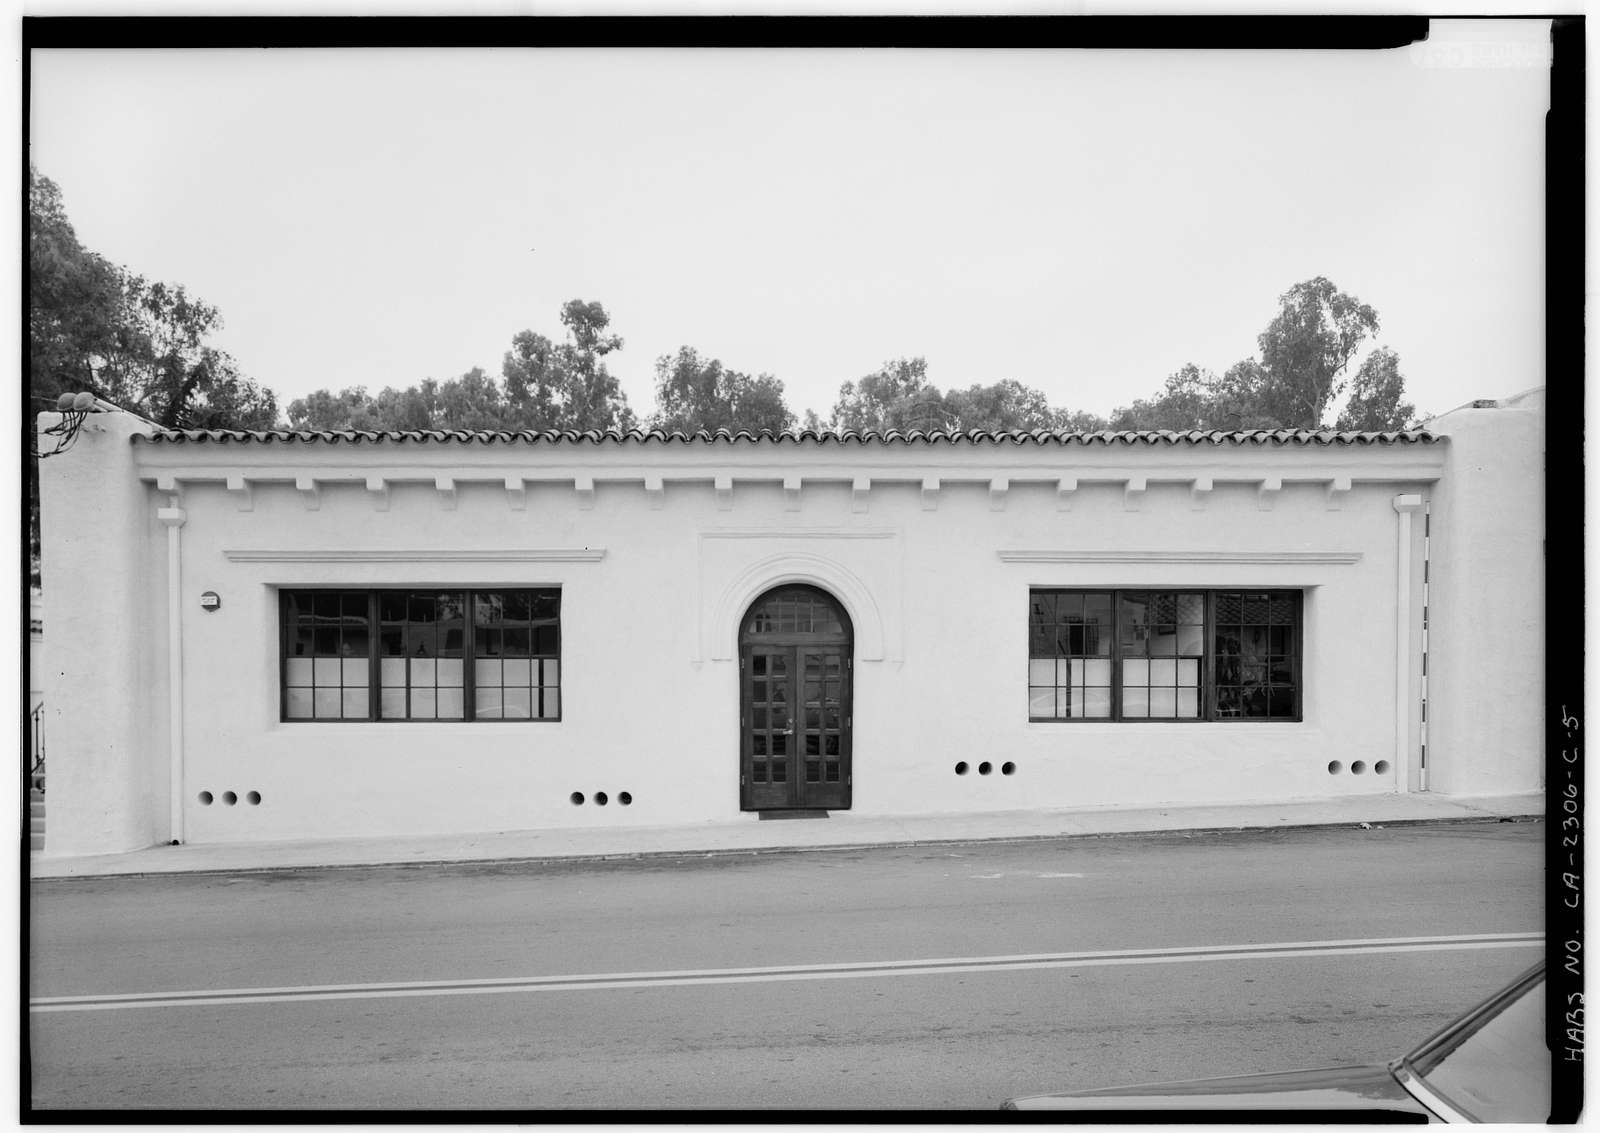 Santa Fe Land Improvement Company, Headquarters Building, 6015 Paseo Delicias, Rancho Santa Fe, San Diego County, CA